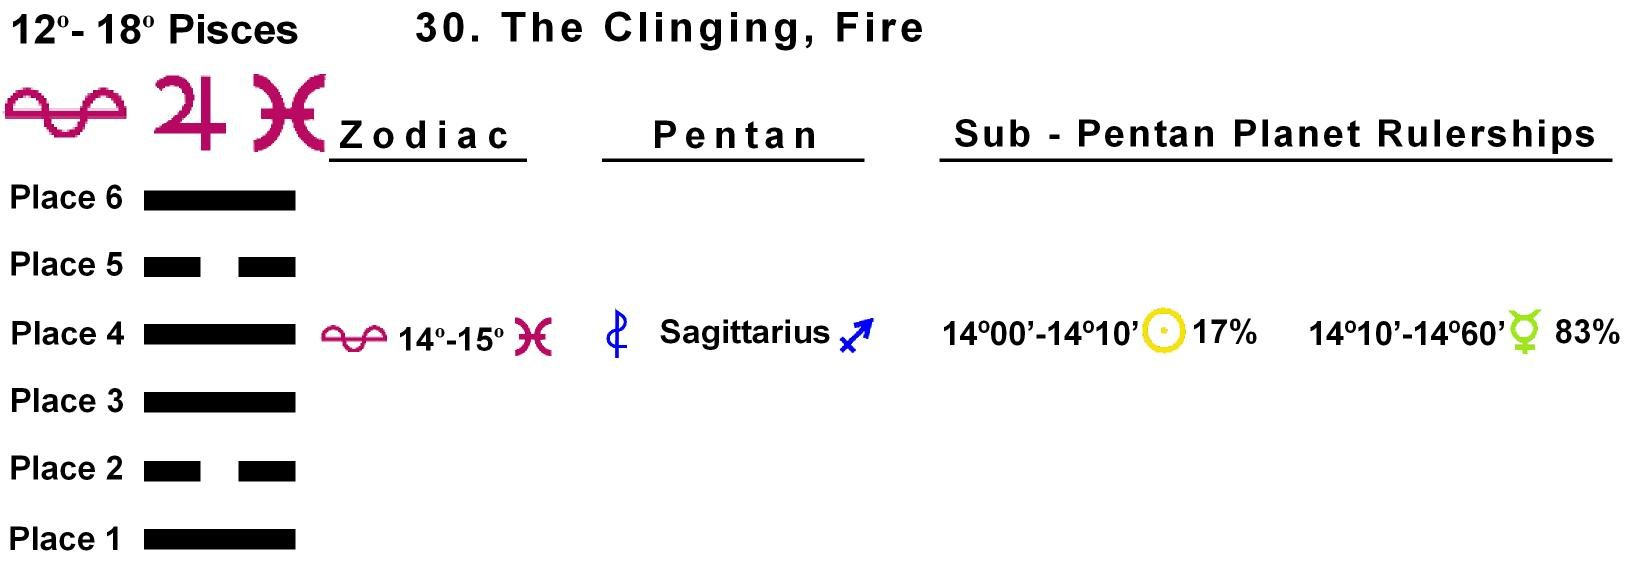 Pent-lines-12PI 14-15 Hx-30 The Clinging Fire